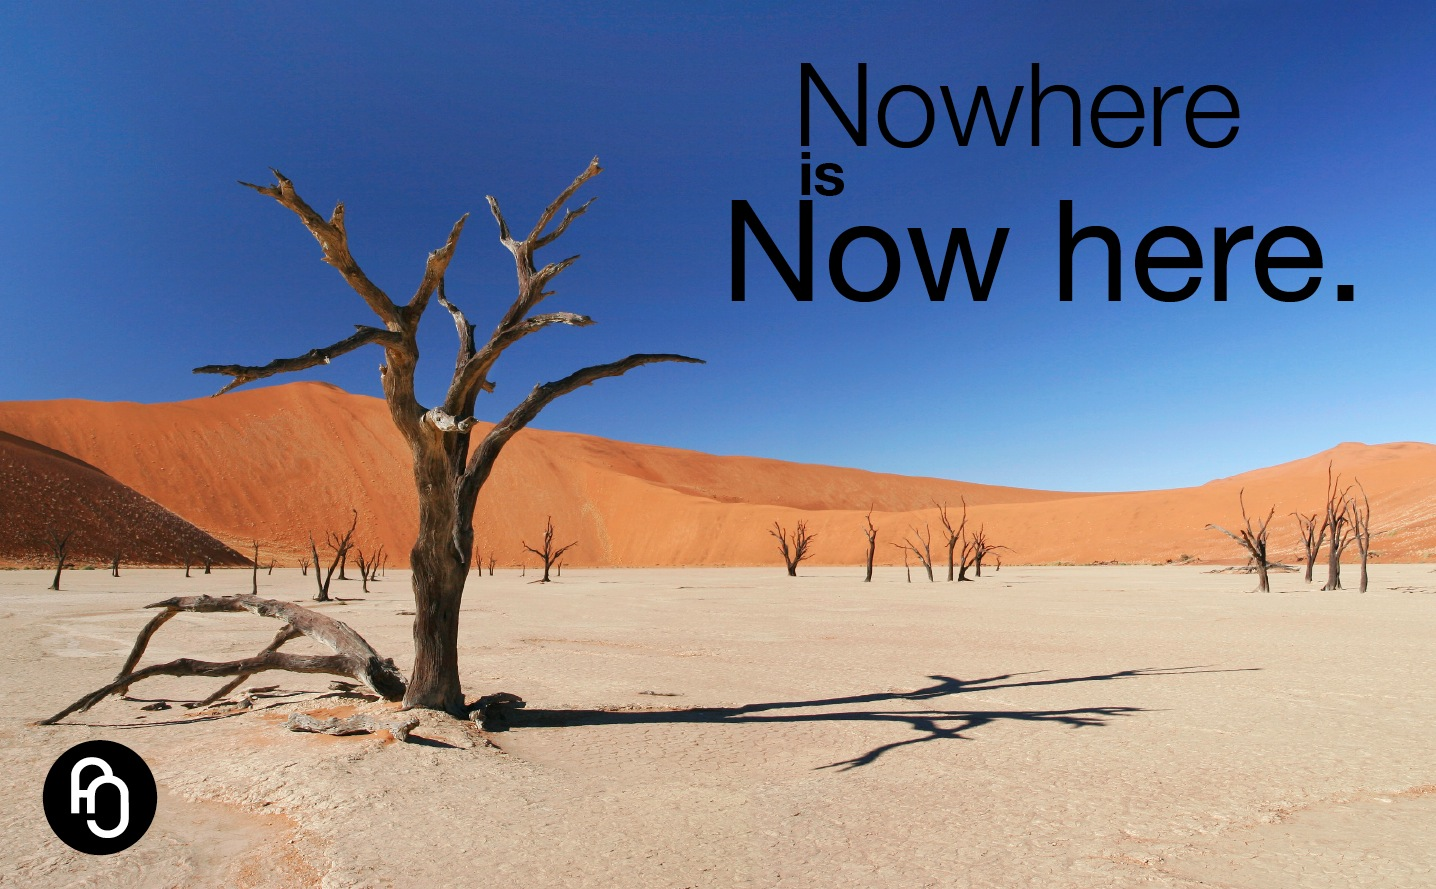 Nowhere = now here